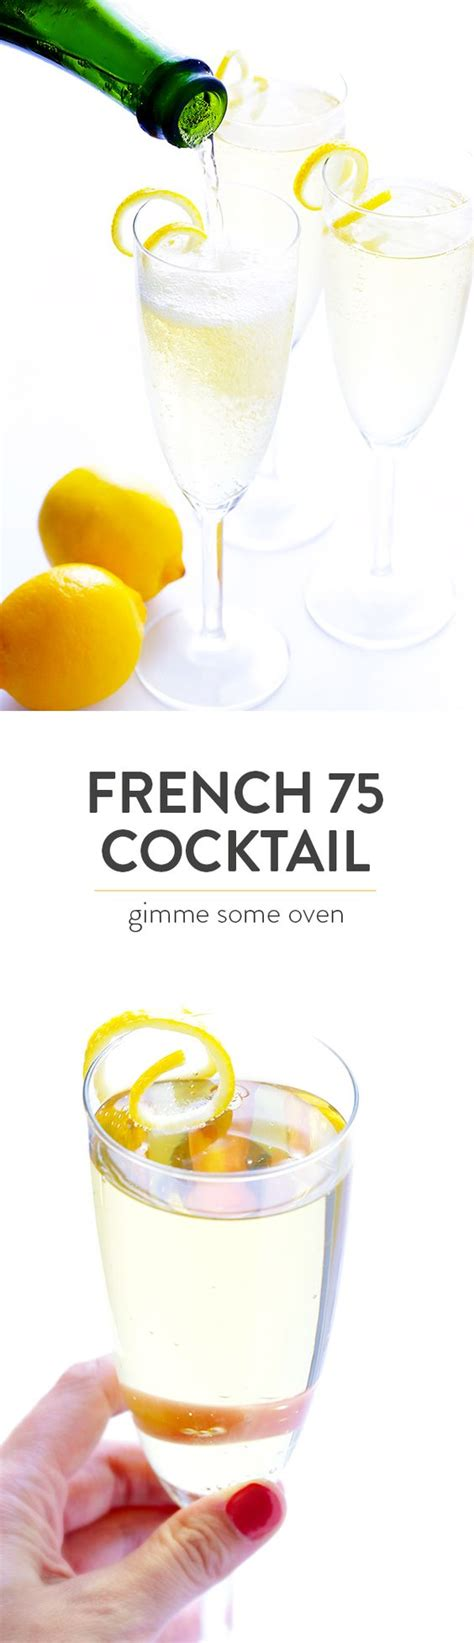 french 75 recipe french 75 recipe simple french 75 cocktail and french 75